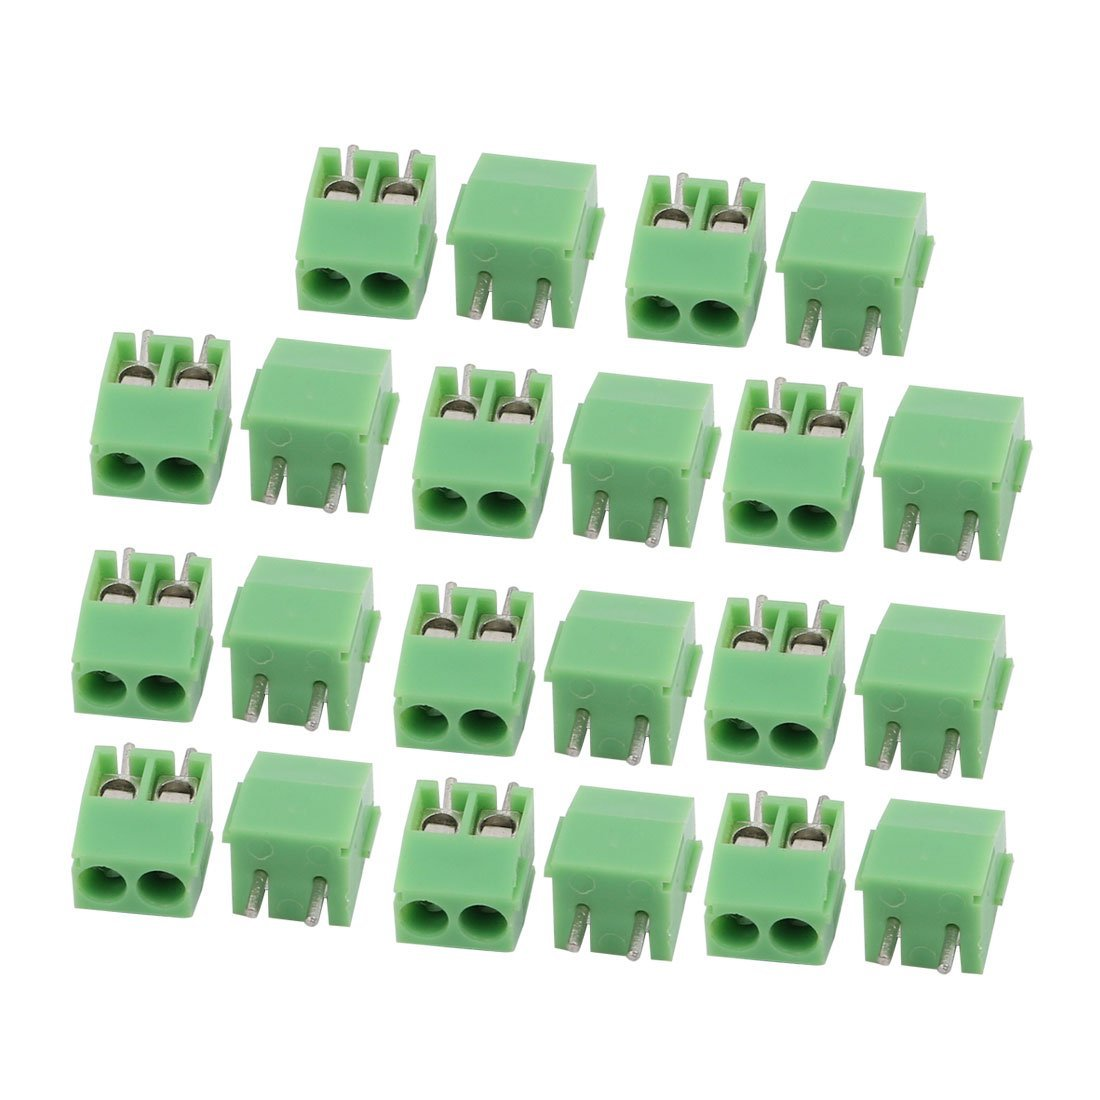 uxcell 22Pcs AC 300V 10A 3.5mm Pitch 2P Terminal Block PCB Mount Wire Connection